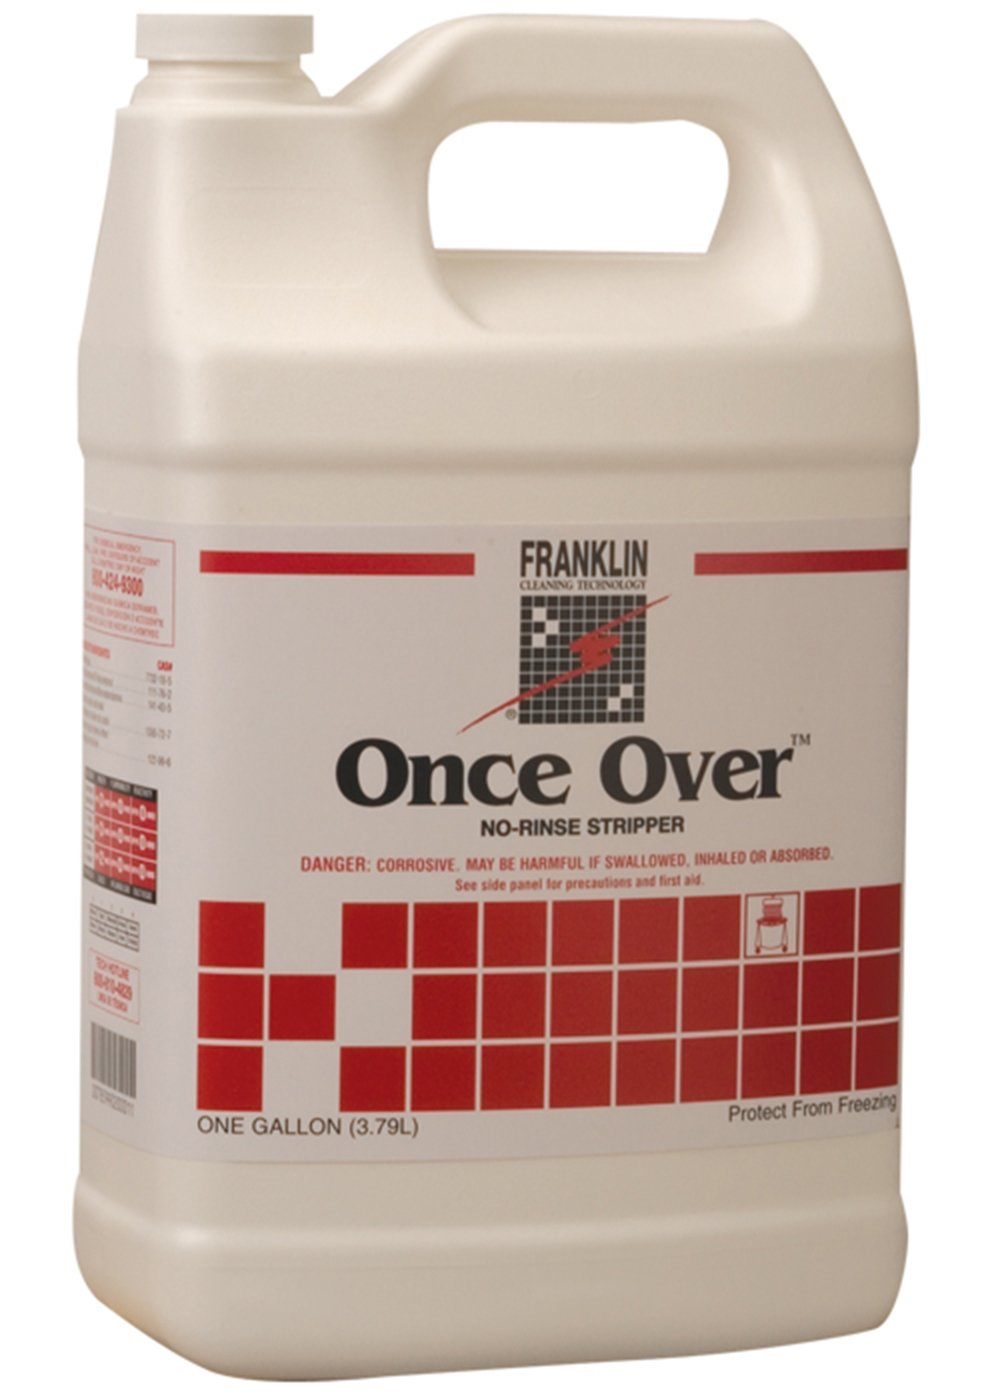 Franklin Cleaning Technology F200022 Once Over No-Rinse Floor Stripper, 1 Gallon (Pack of 4)